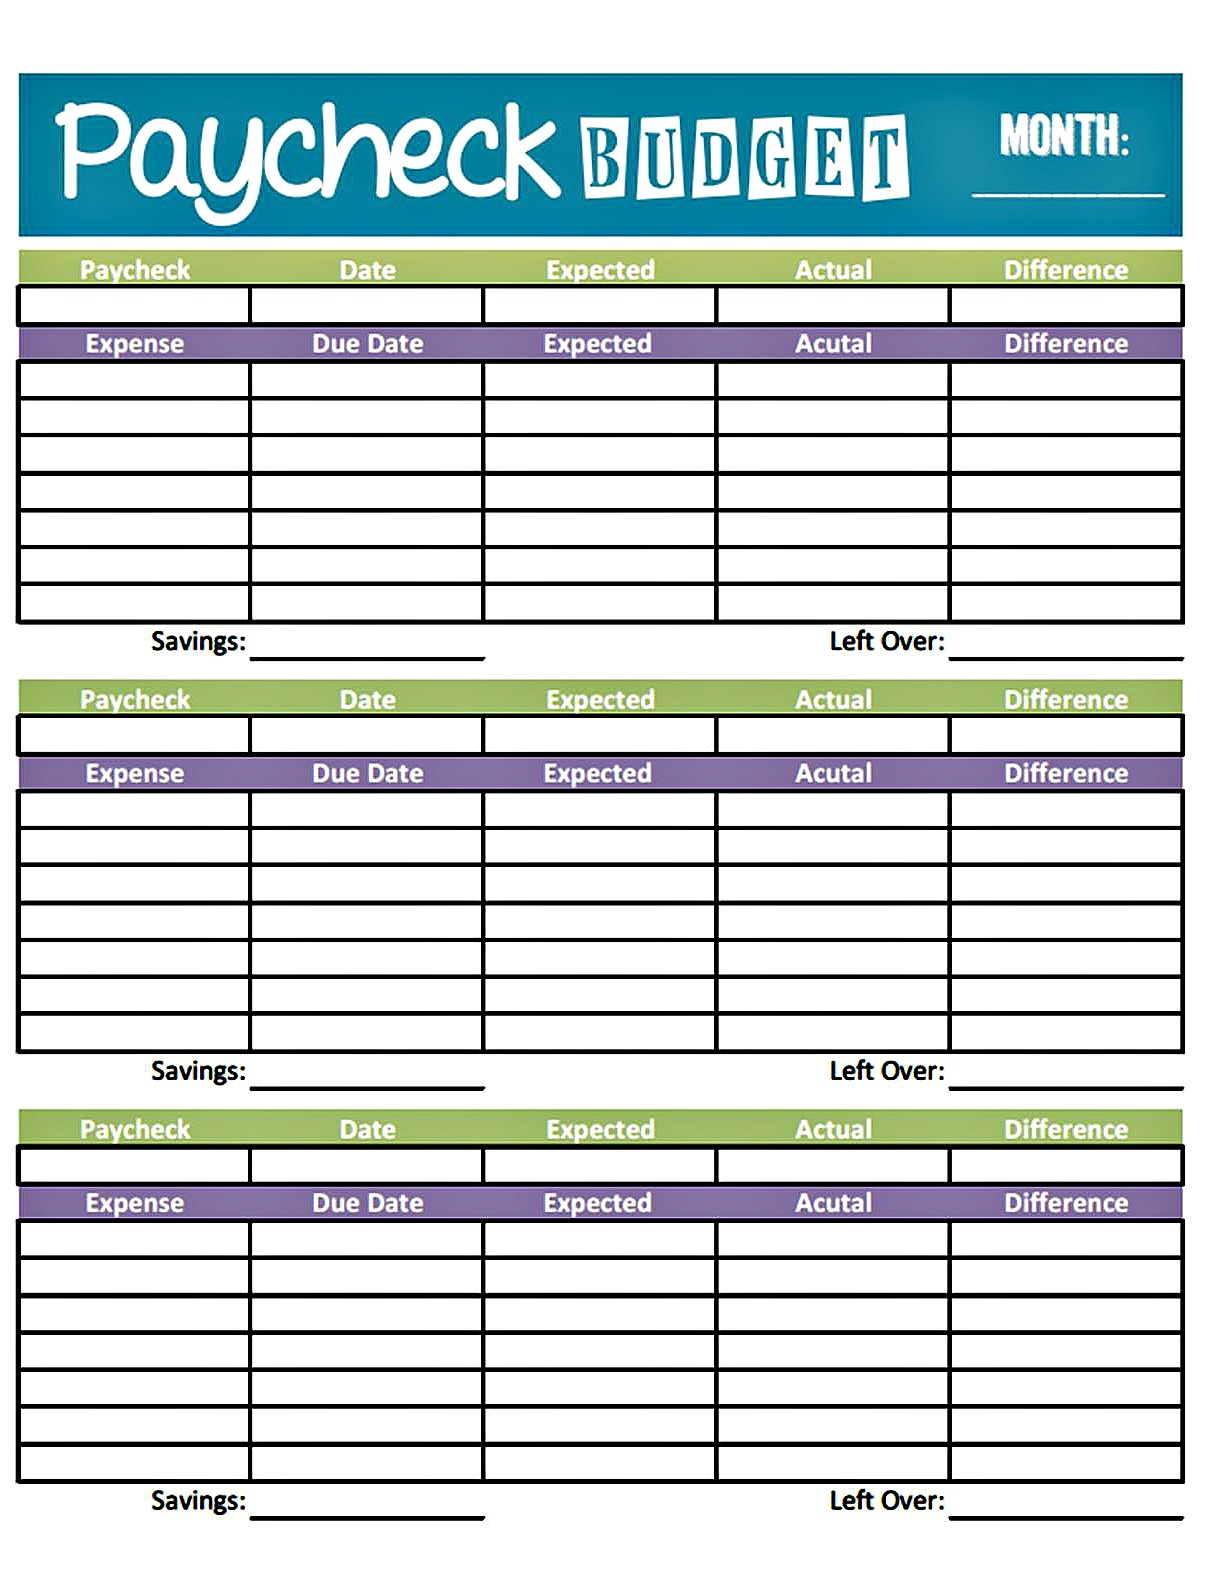 monthly paycheck budget worksheet excel